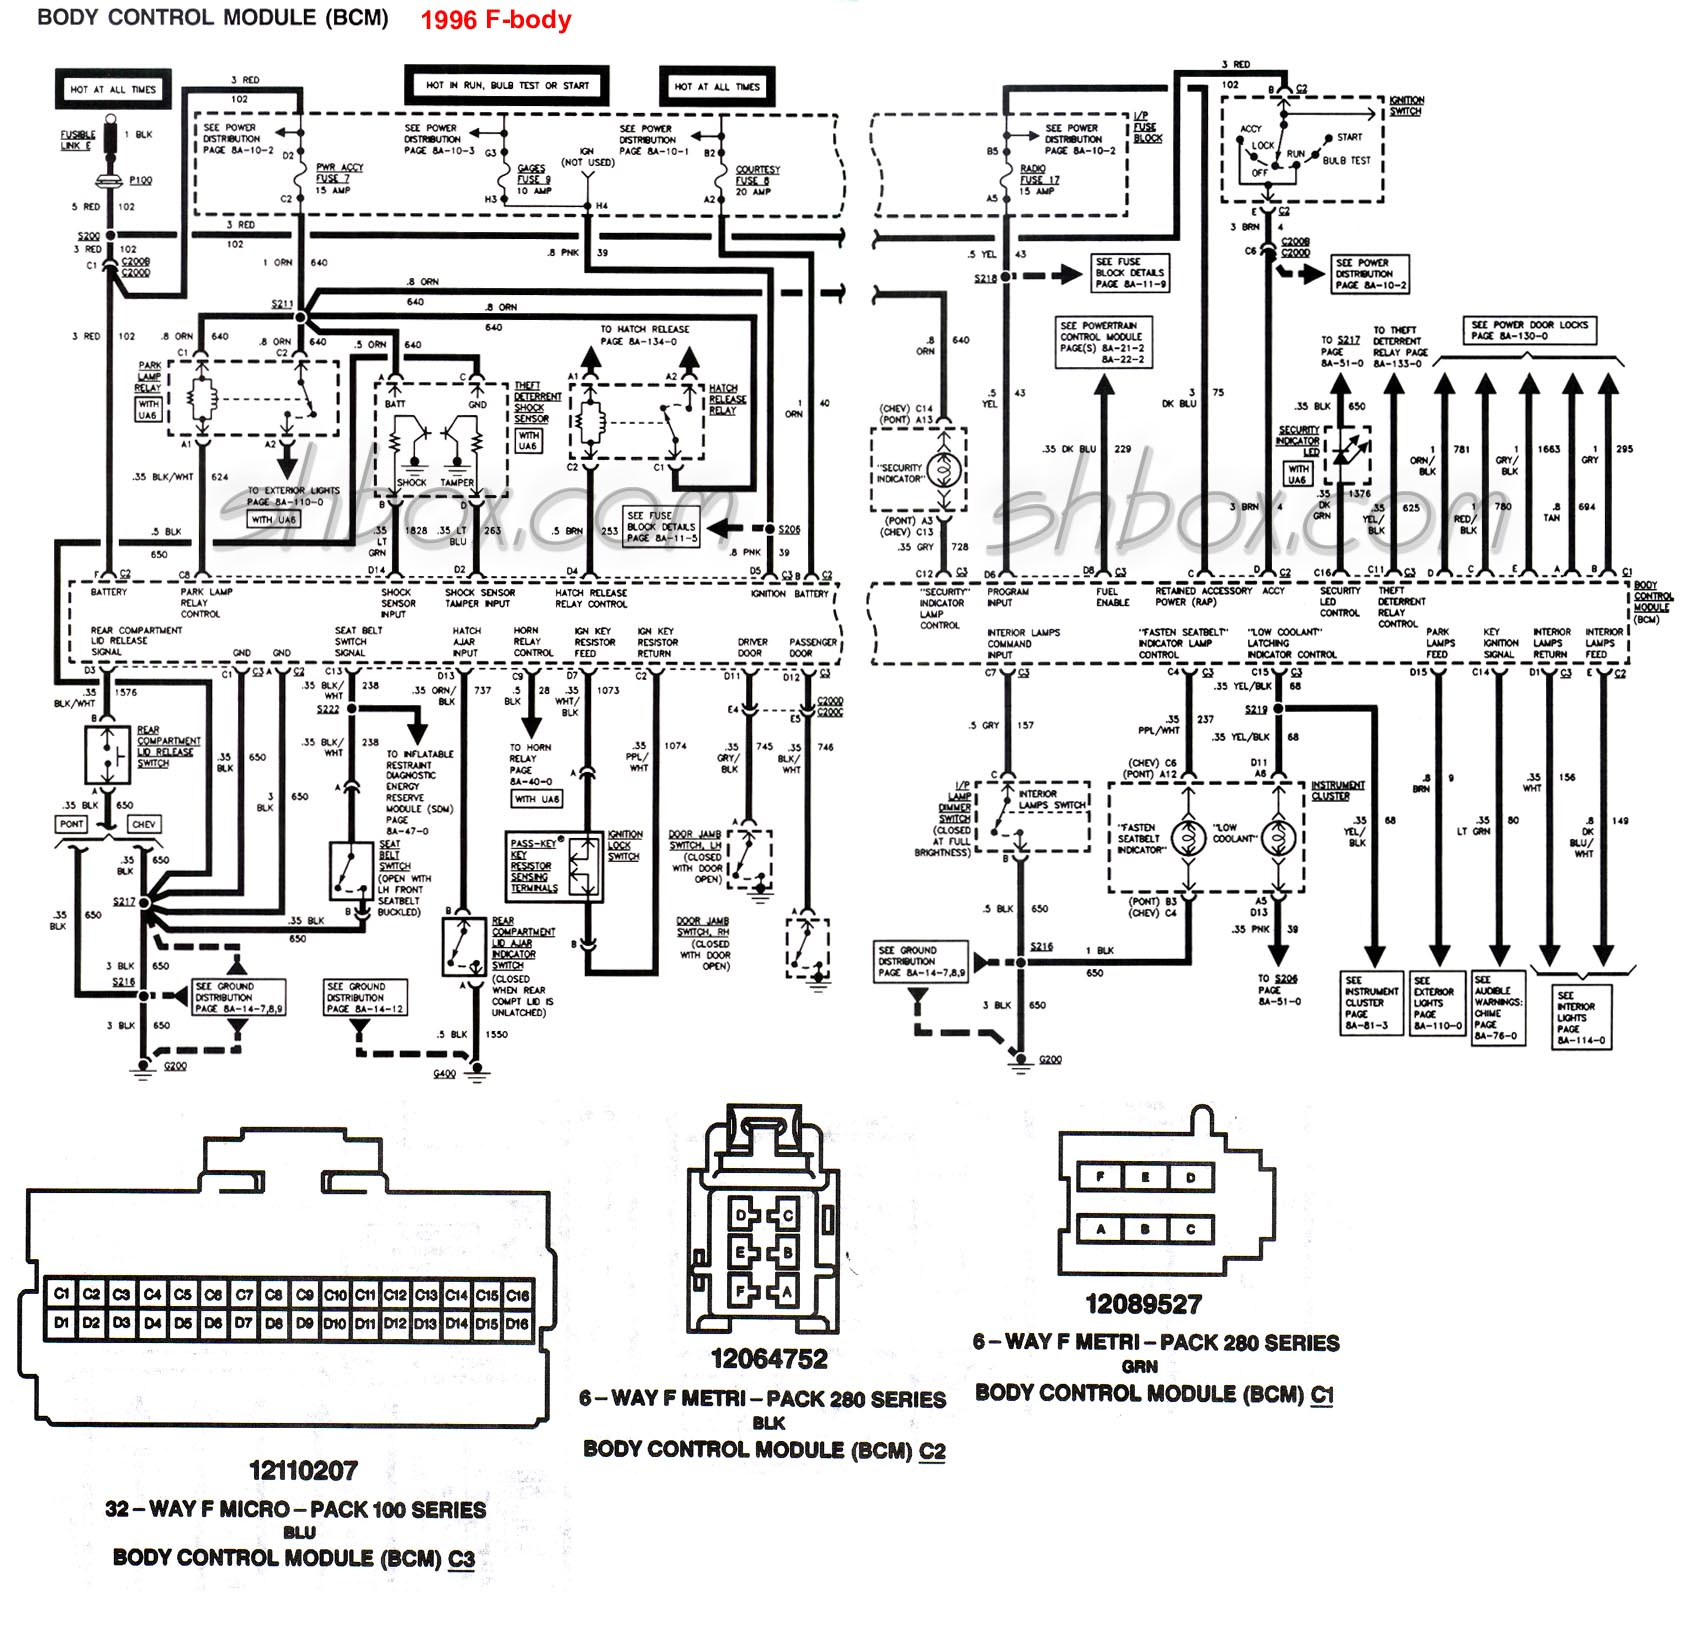 D104 To Co Mic Wiring Diagram Copper Electronics Mic Wiring Cobra Mic Wiring D104 Wiring